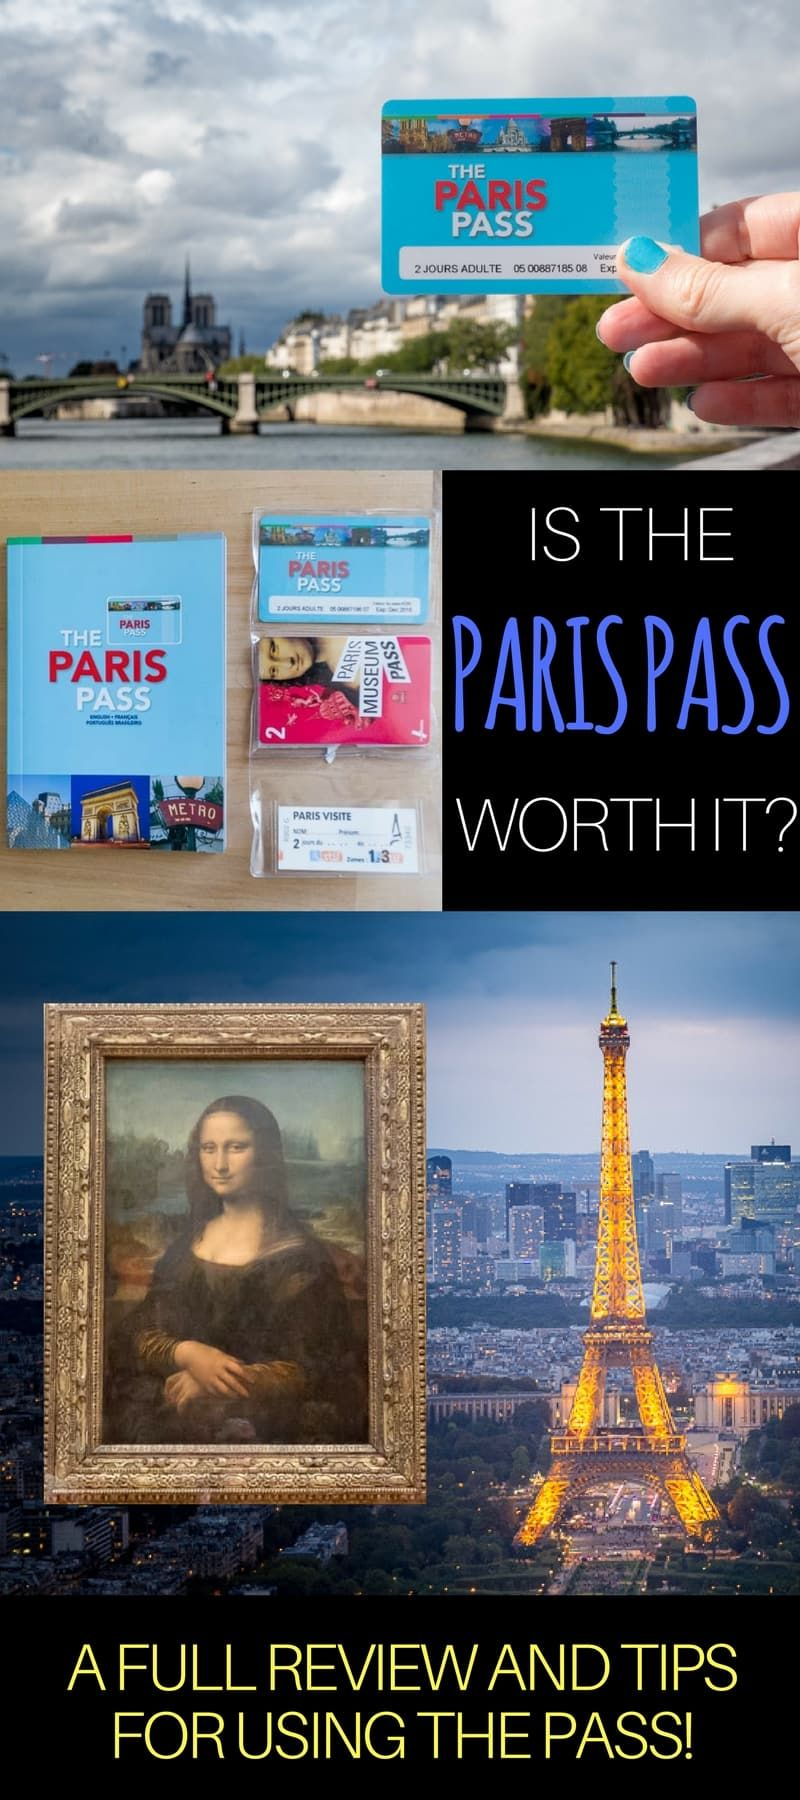 A full review of the Paris Pass and we show you how to do calculations to figure out any potential cost savings with the pass. Includes loads of tips for buying & using the Paris Pass, as well as how to calculate if the Paris Pass is worth it for your trip to Paris France.  #Paris #ParisPass #ParisMuseumPass #Paristips